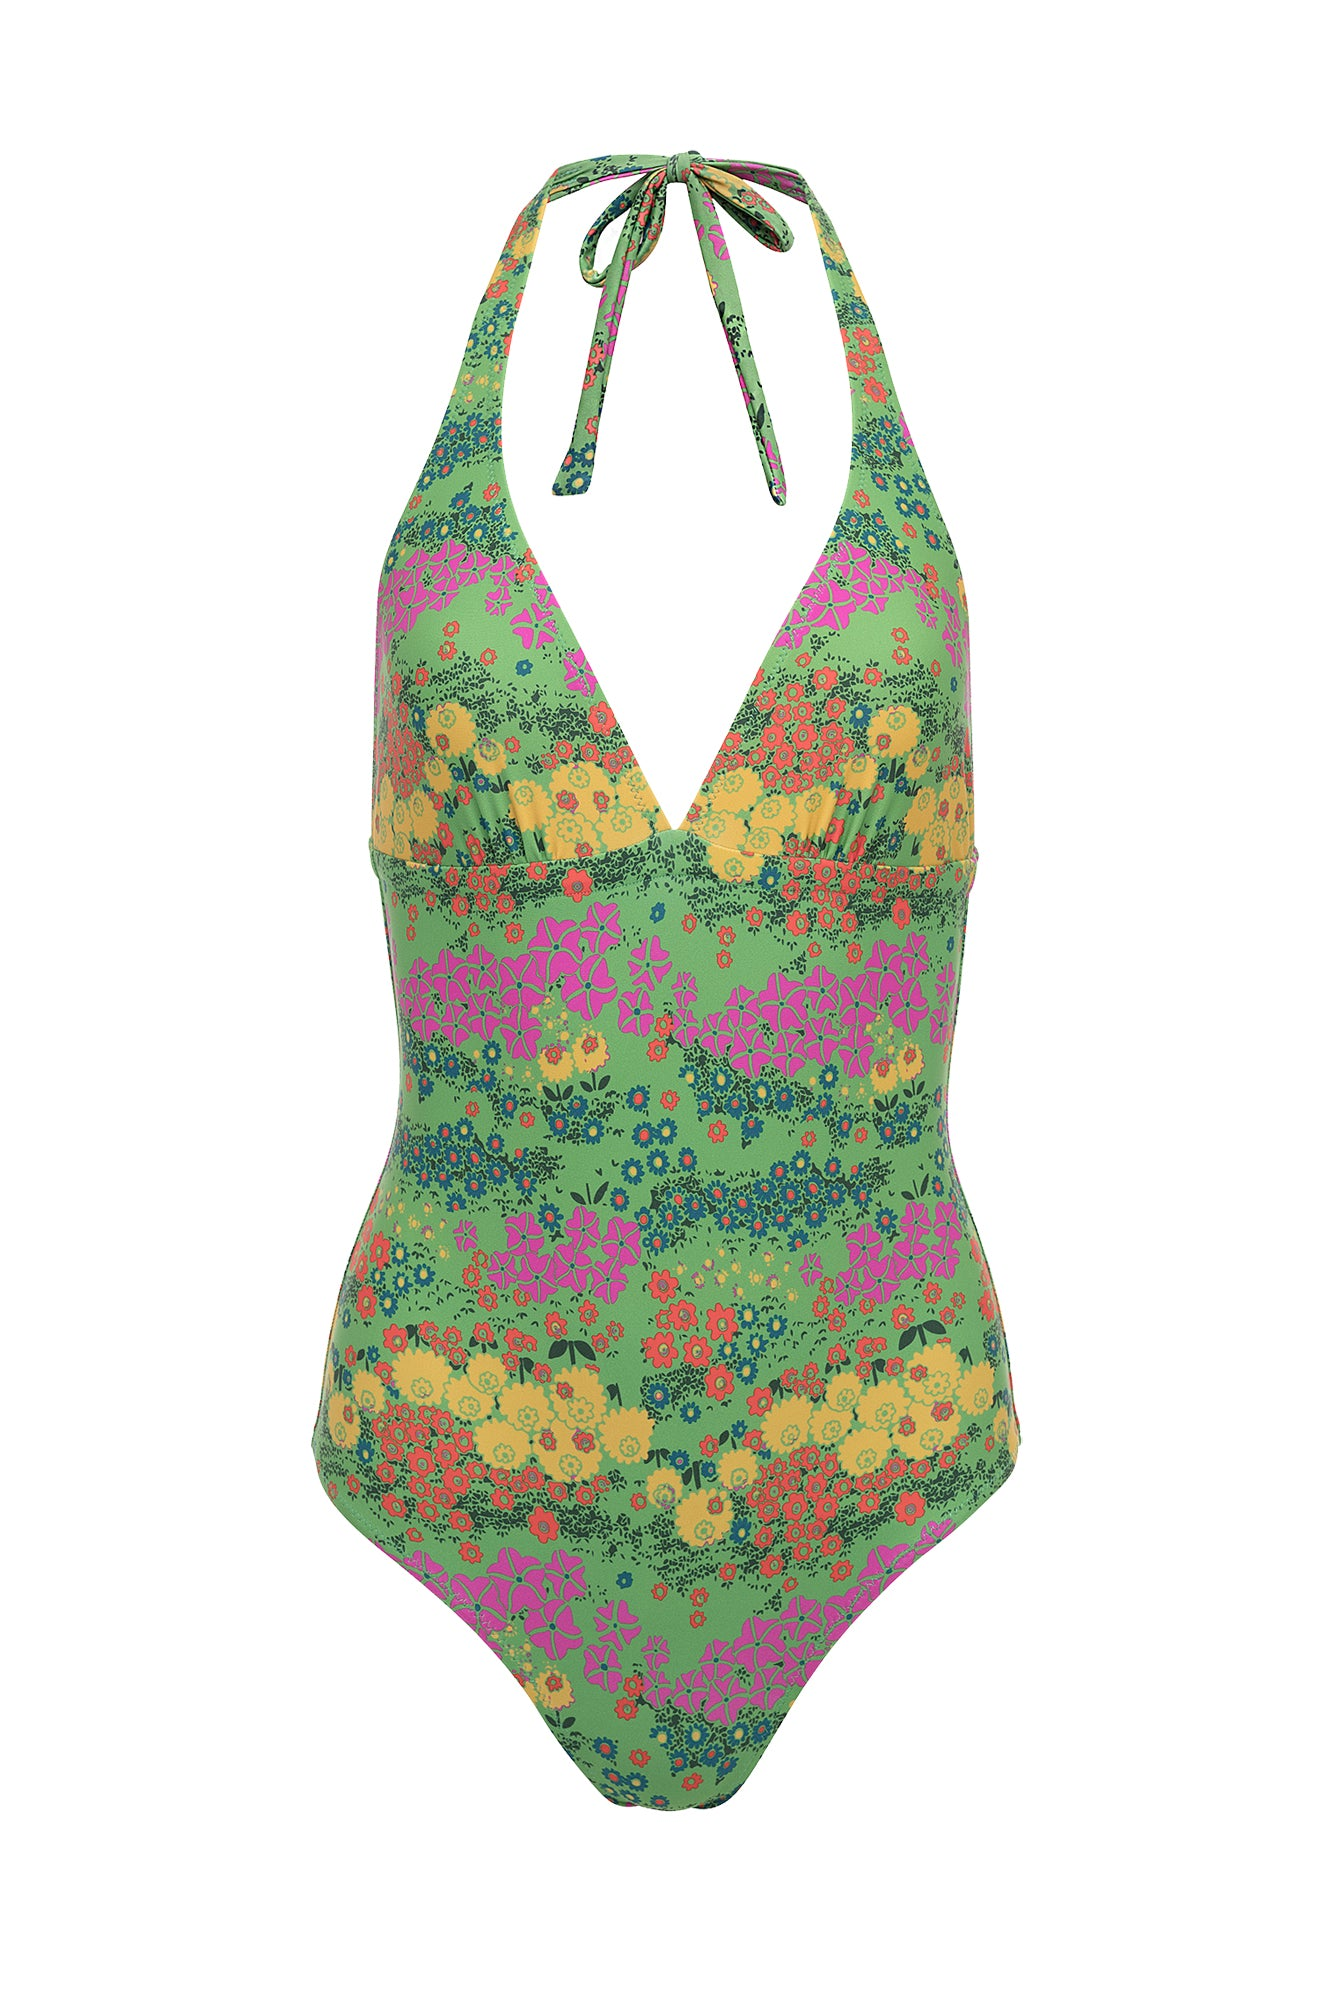 Carolina K Leticia One Piece Vintage Green Flowers